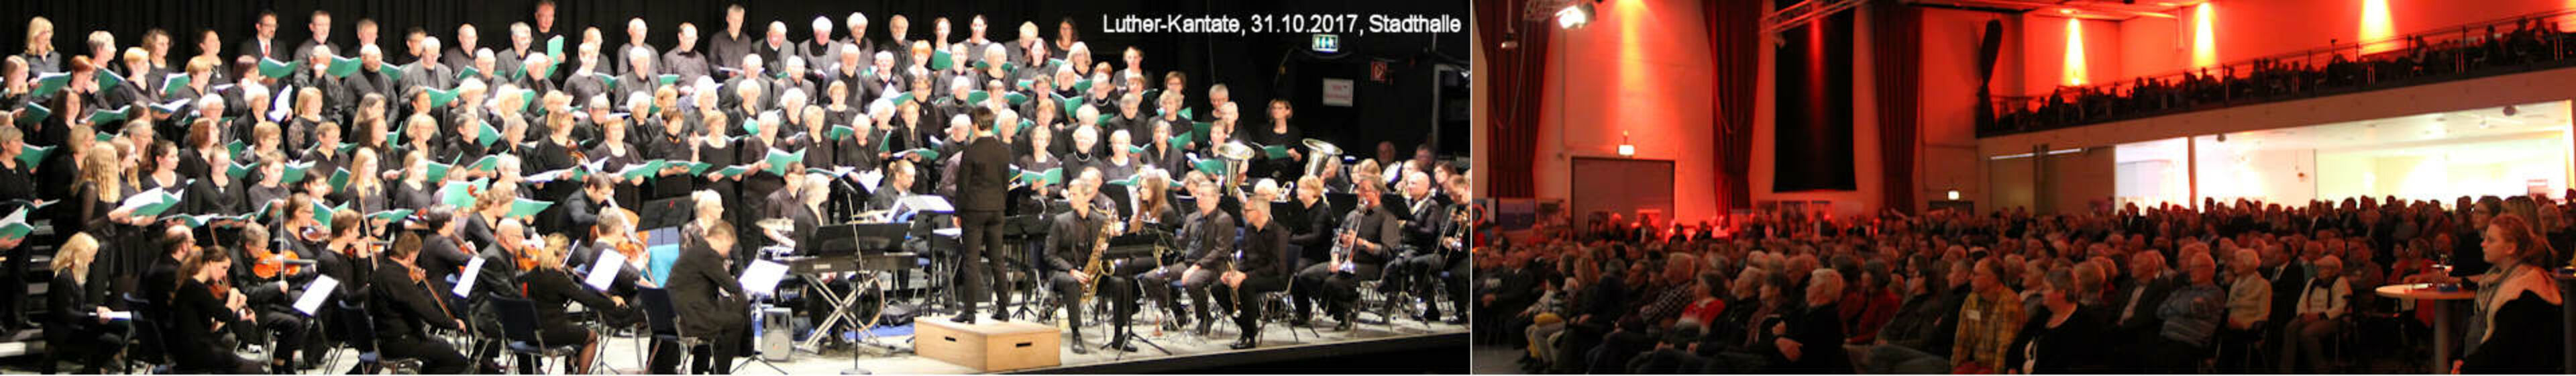 31.10.2017 Luther-Kantate